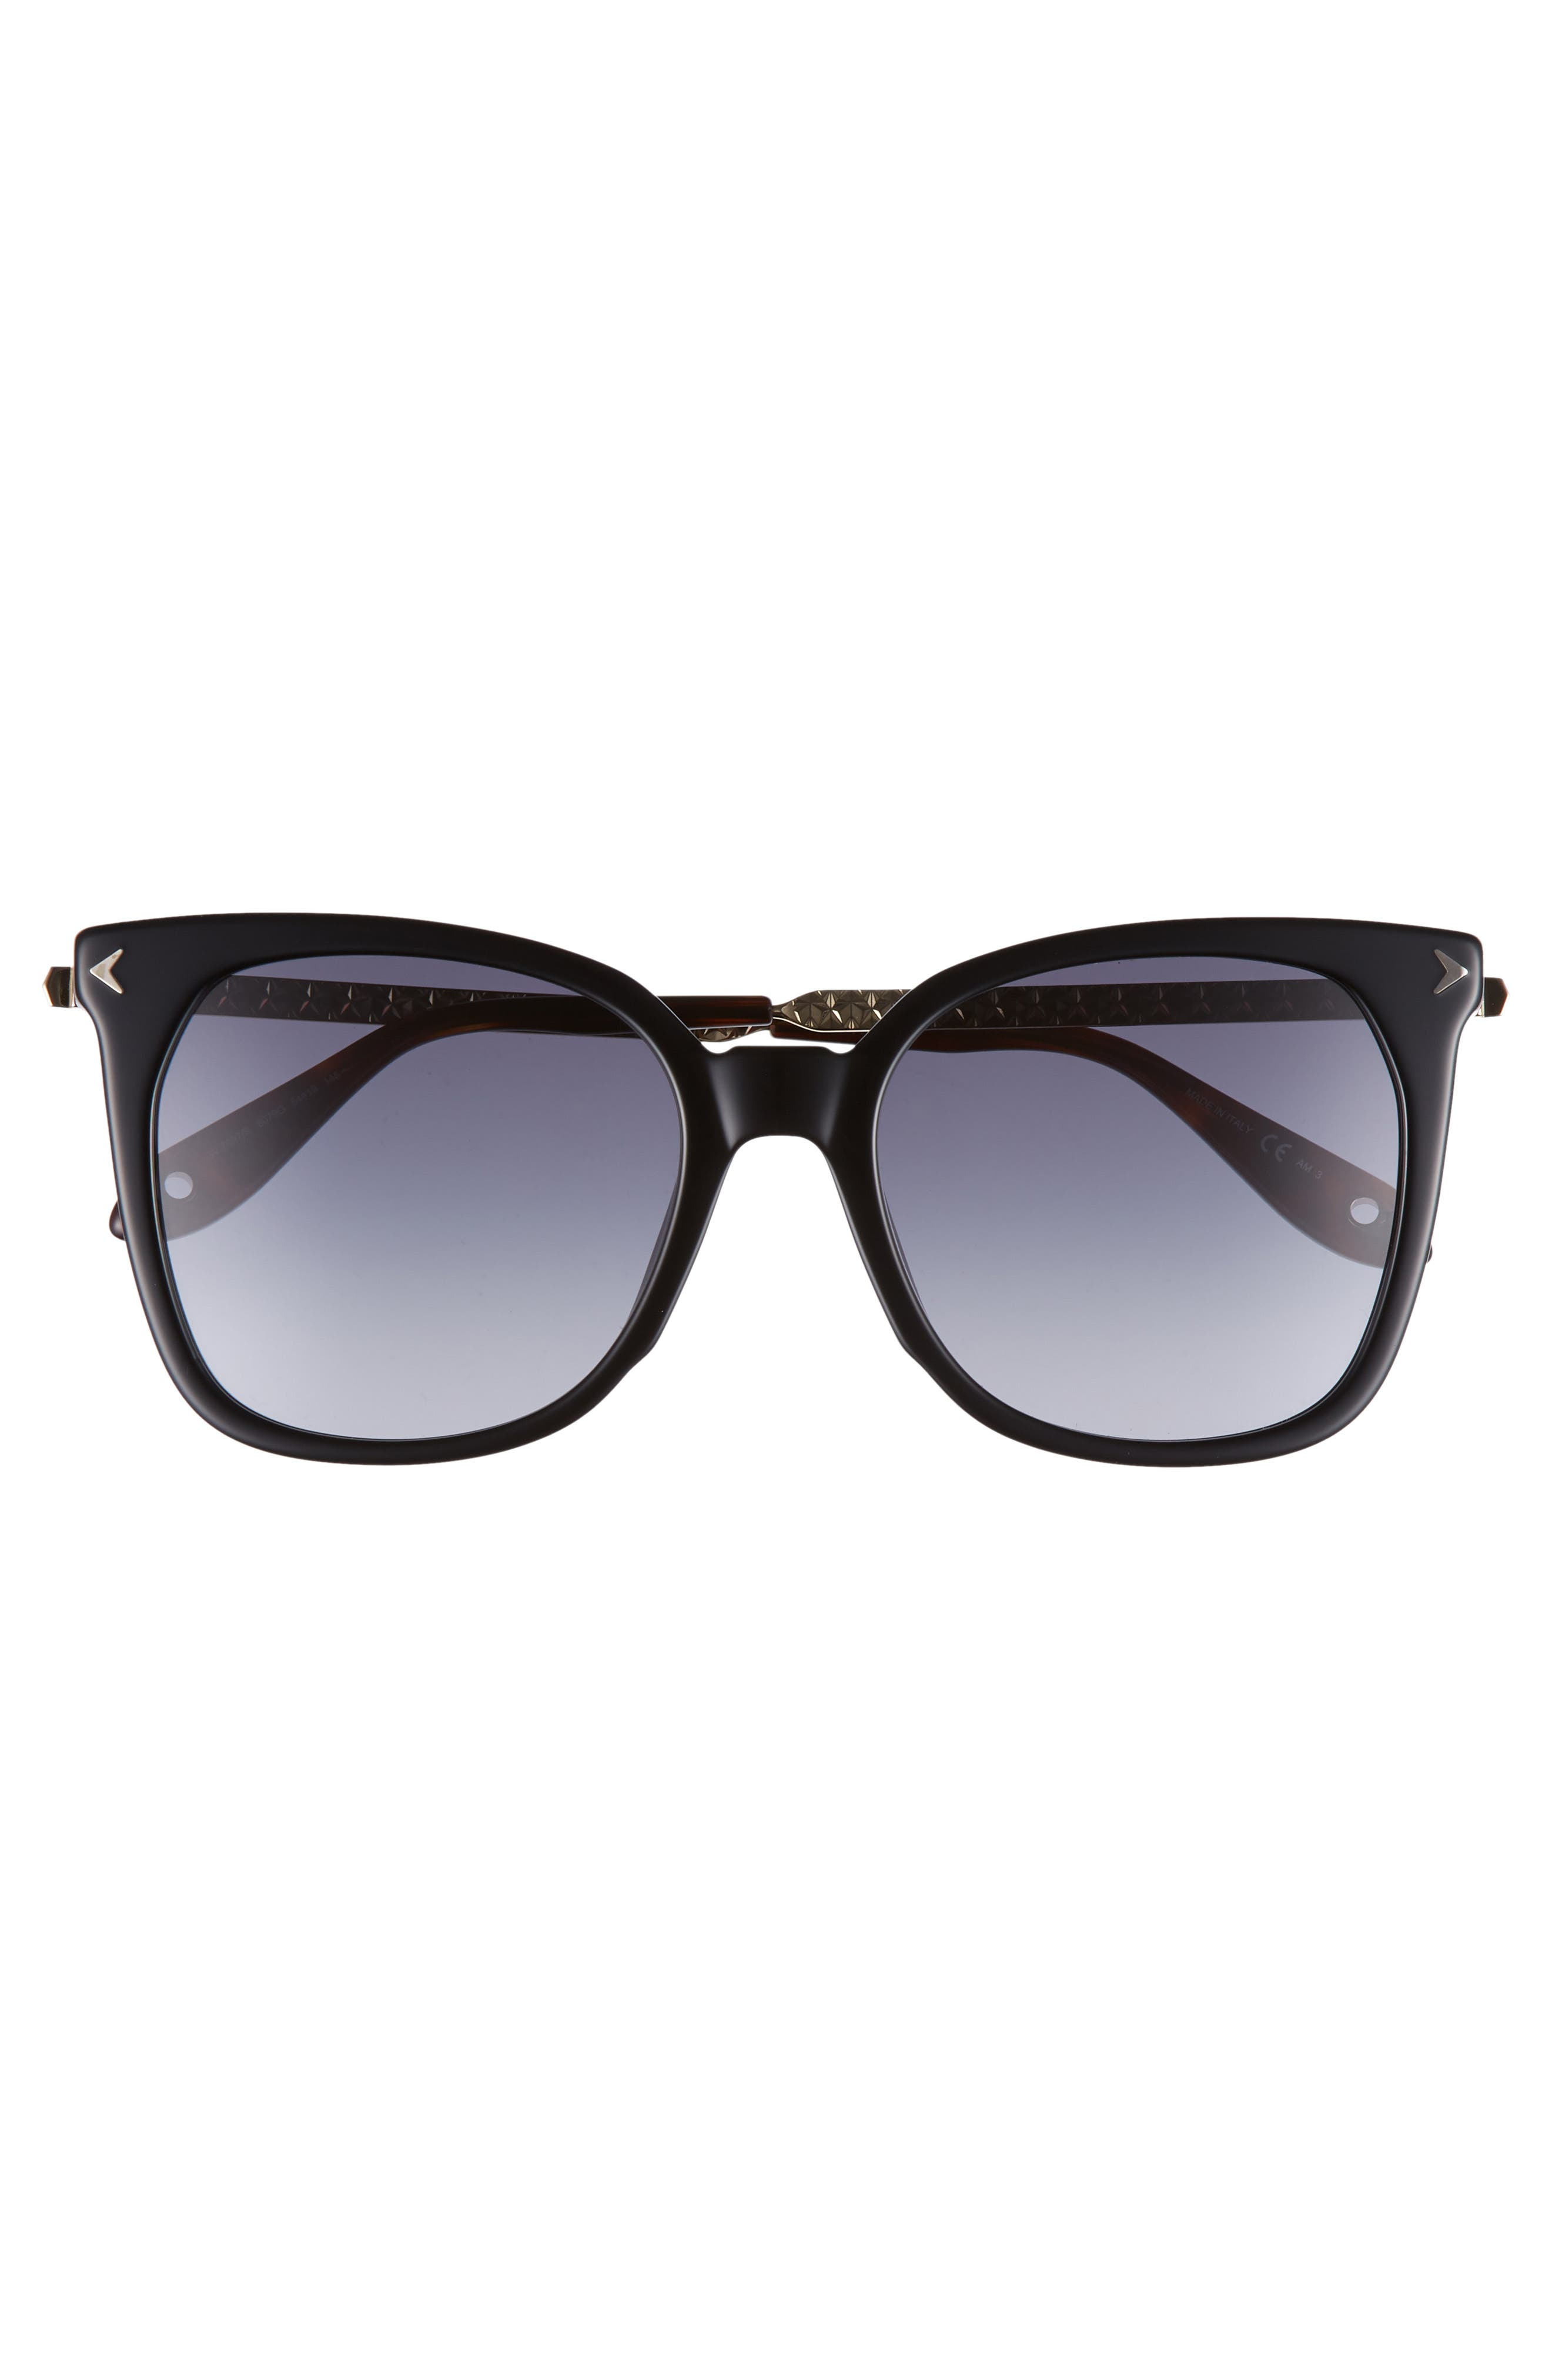 54mm Square Sunglasses,                             Alternate thumbnail 3, color,                             BLACK